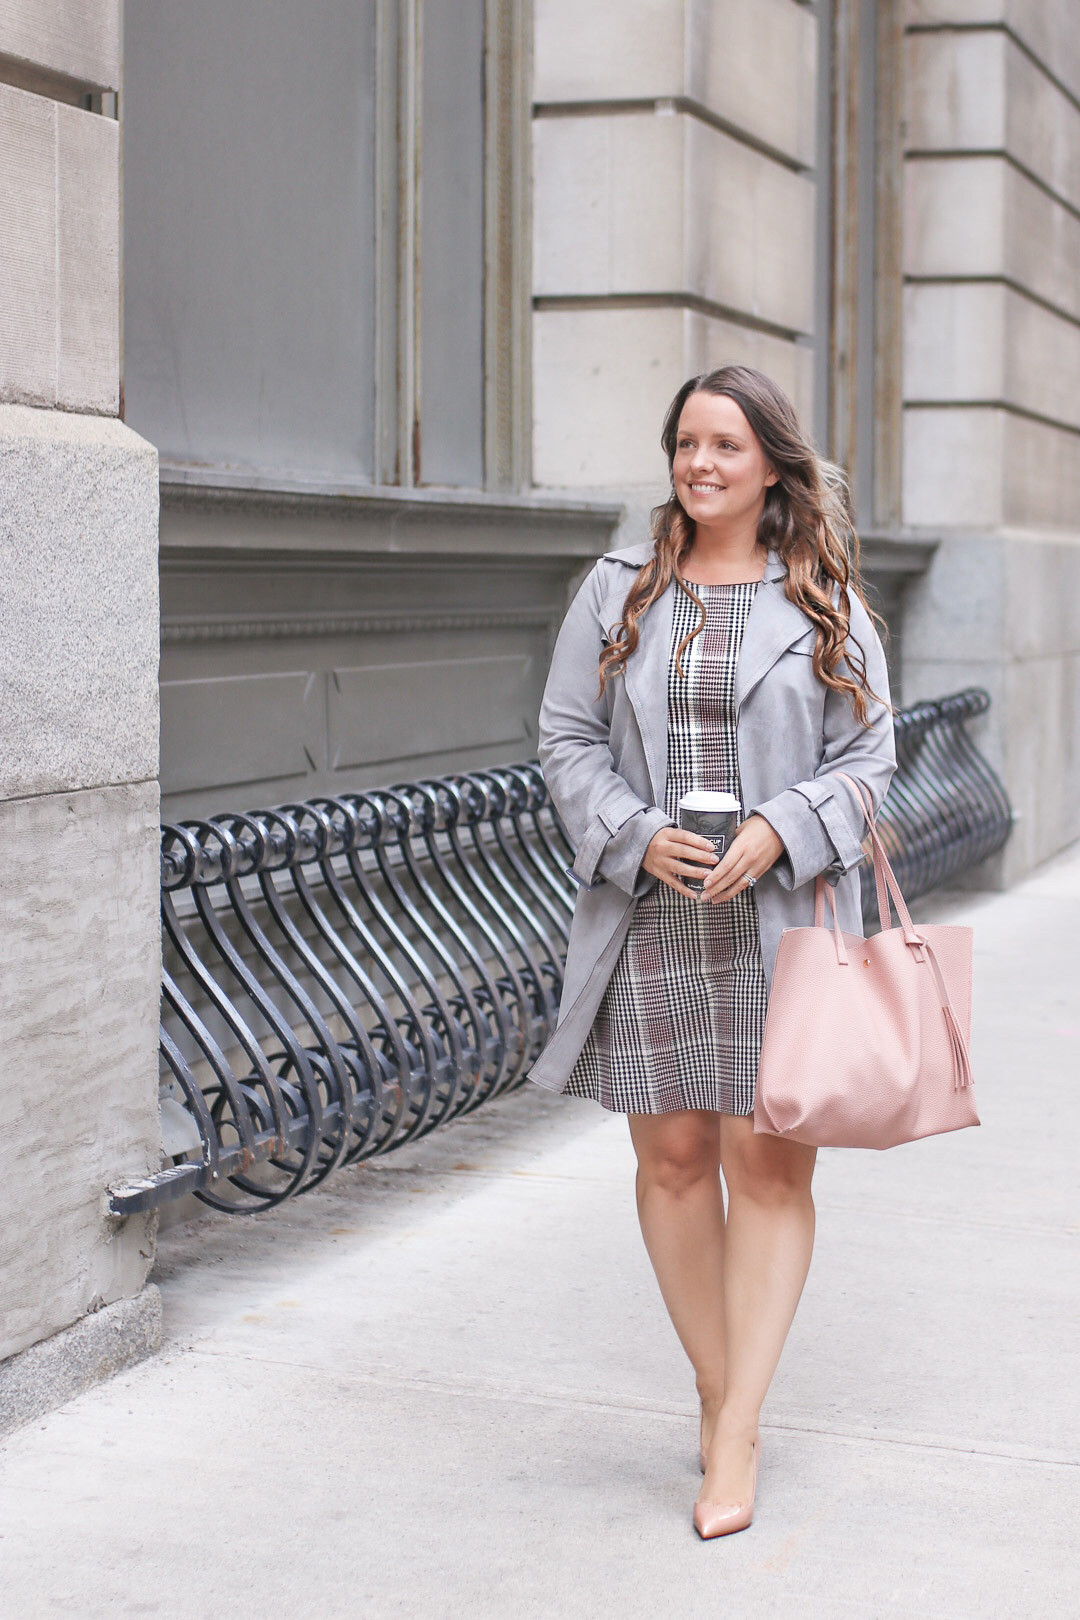 Work Outfits Women Plaid Dress Trench Coat Pink Tote Bag A Side Of Style